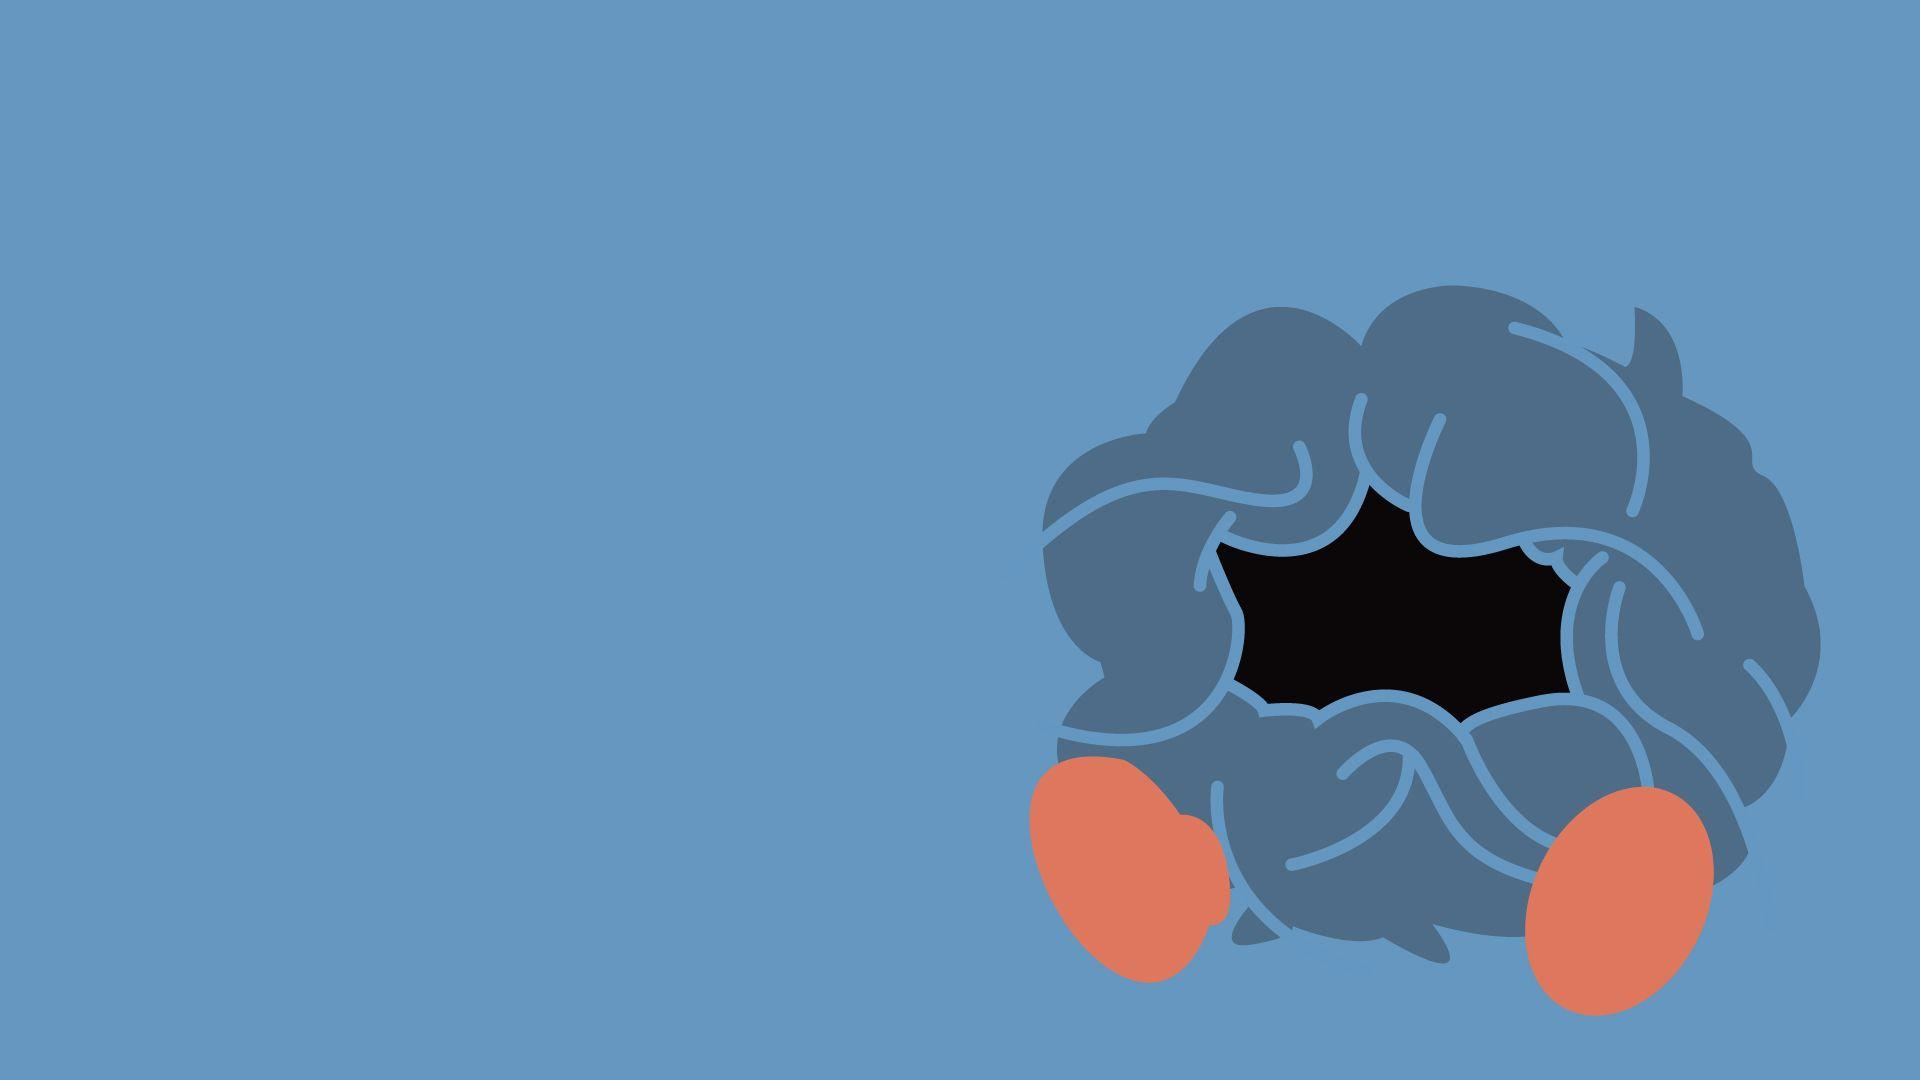 Tangela, Minimalism, Blue Background wallpaper | anime | Wallpaper ...